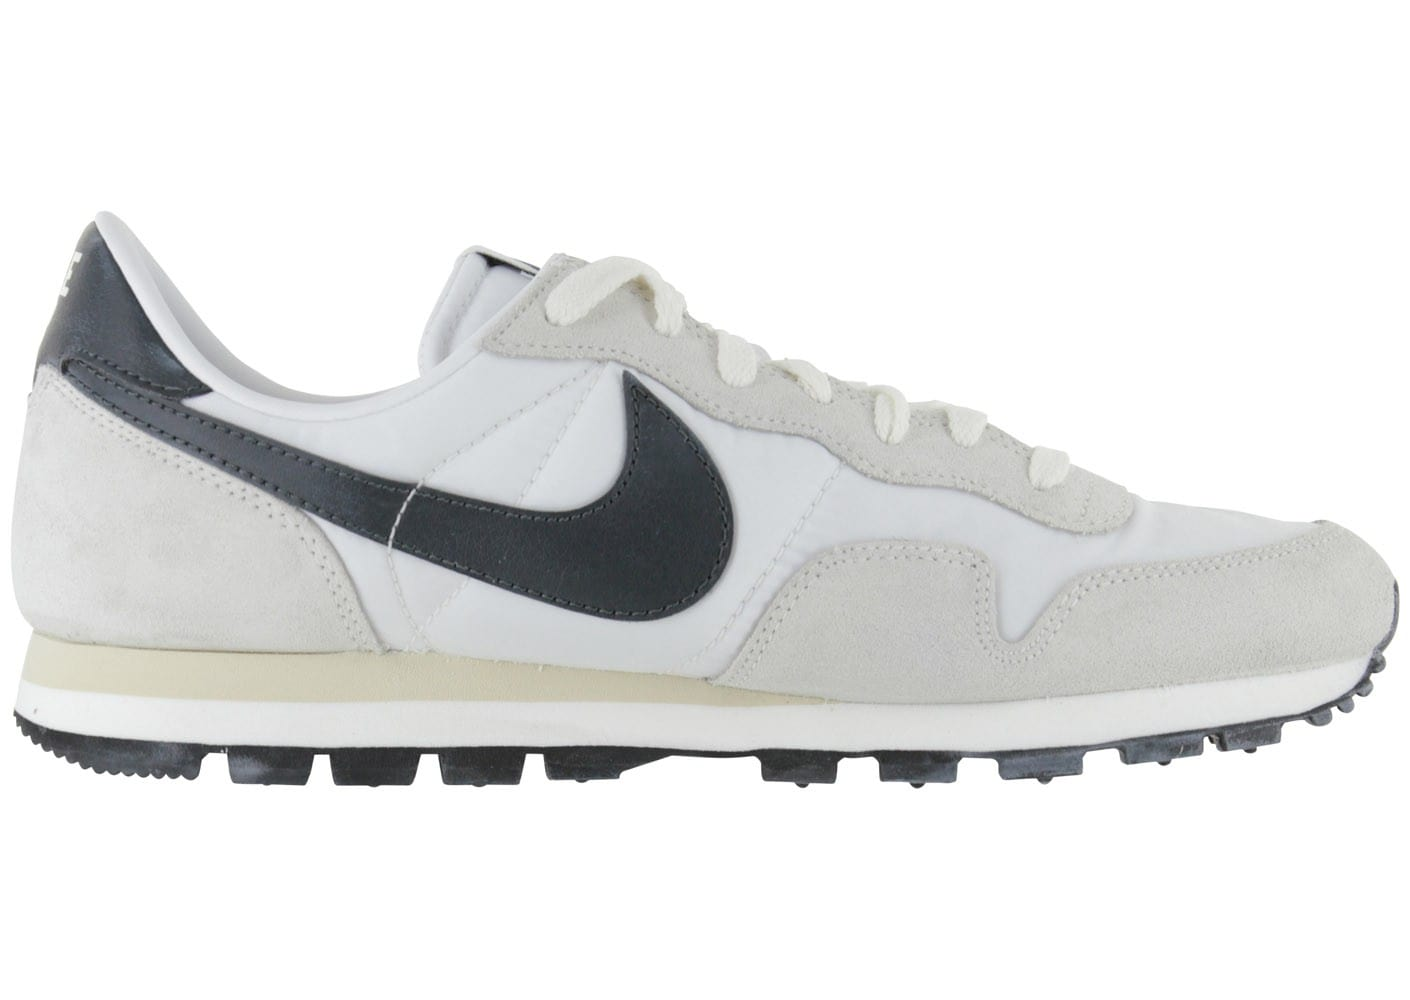 nike air pegasus 83 blanche chaussures homme chausport. Black Bedroom Furniture Sets. Home Design Ideas